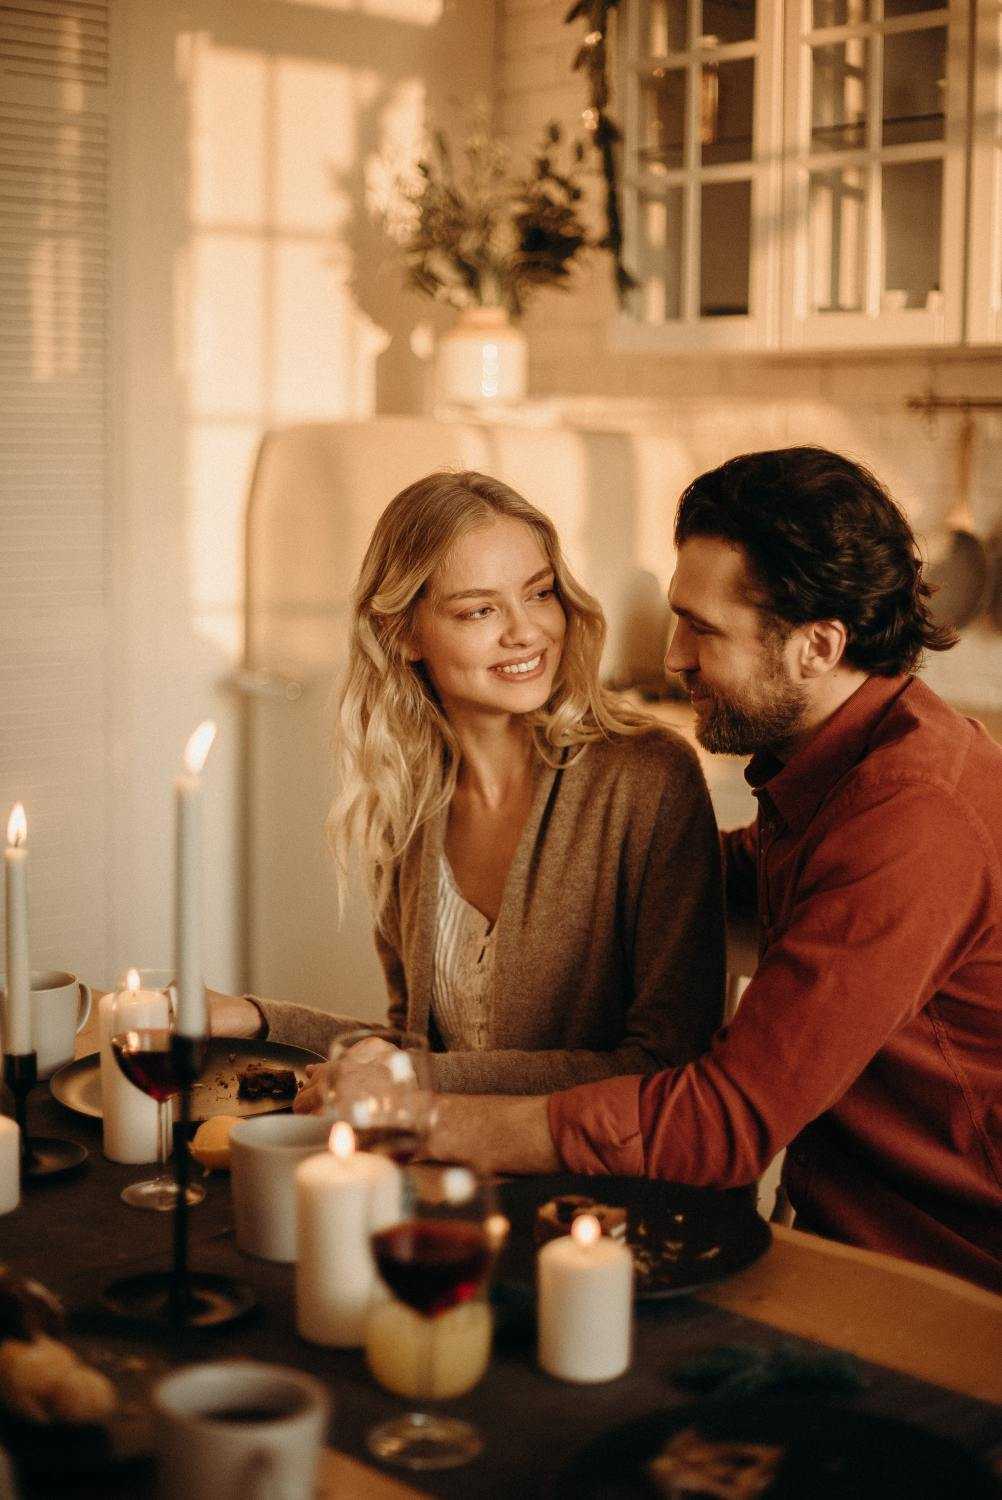 20 Ways To Show Her You Love Her Without Telling Her